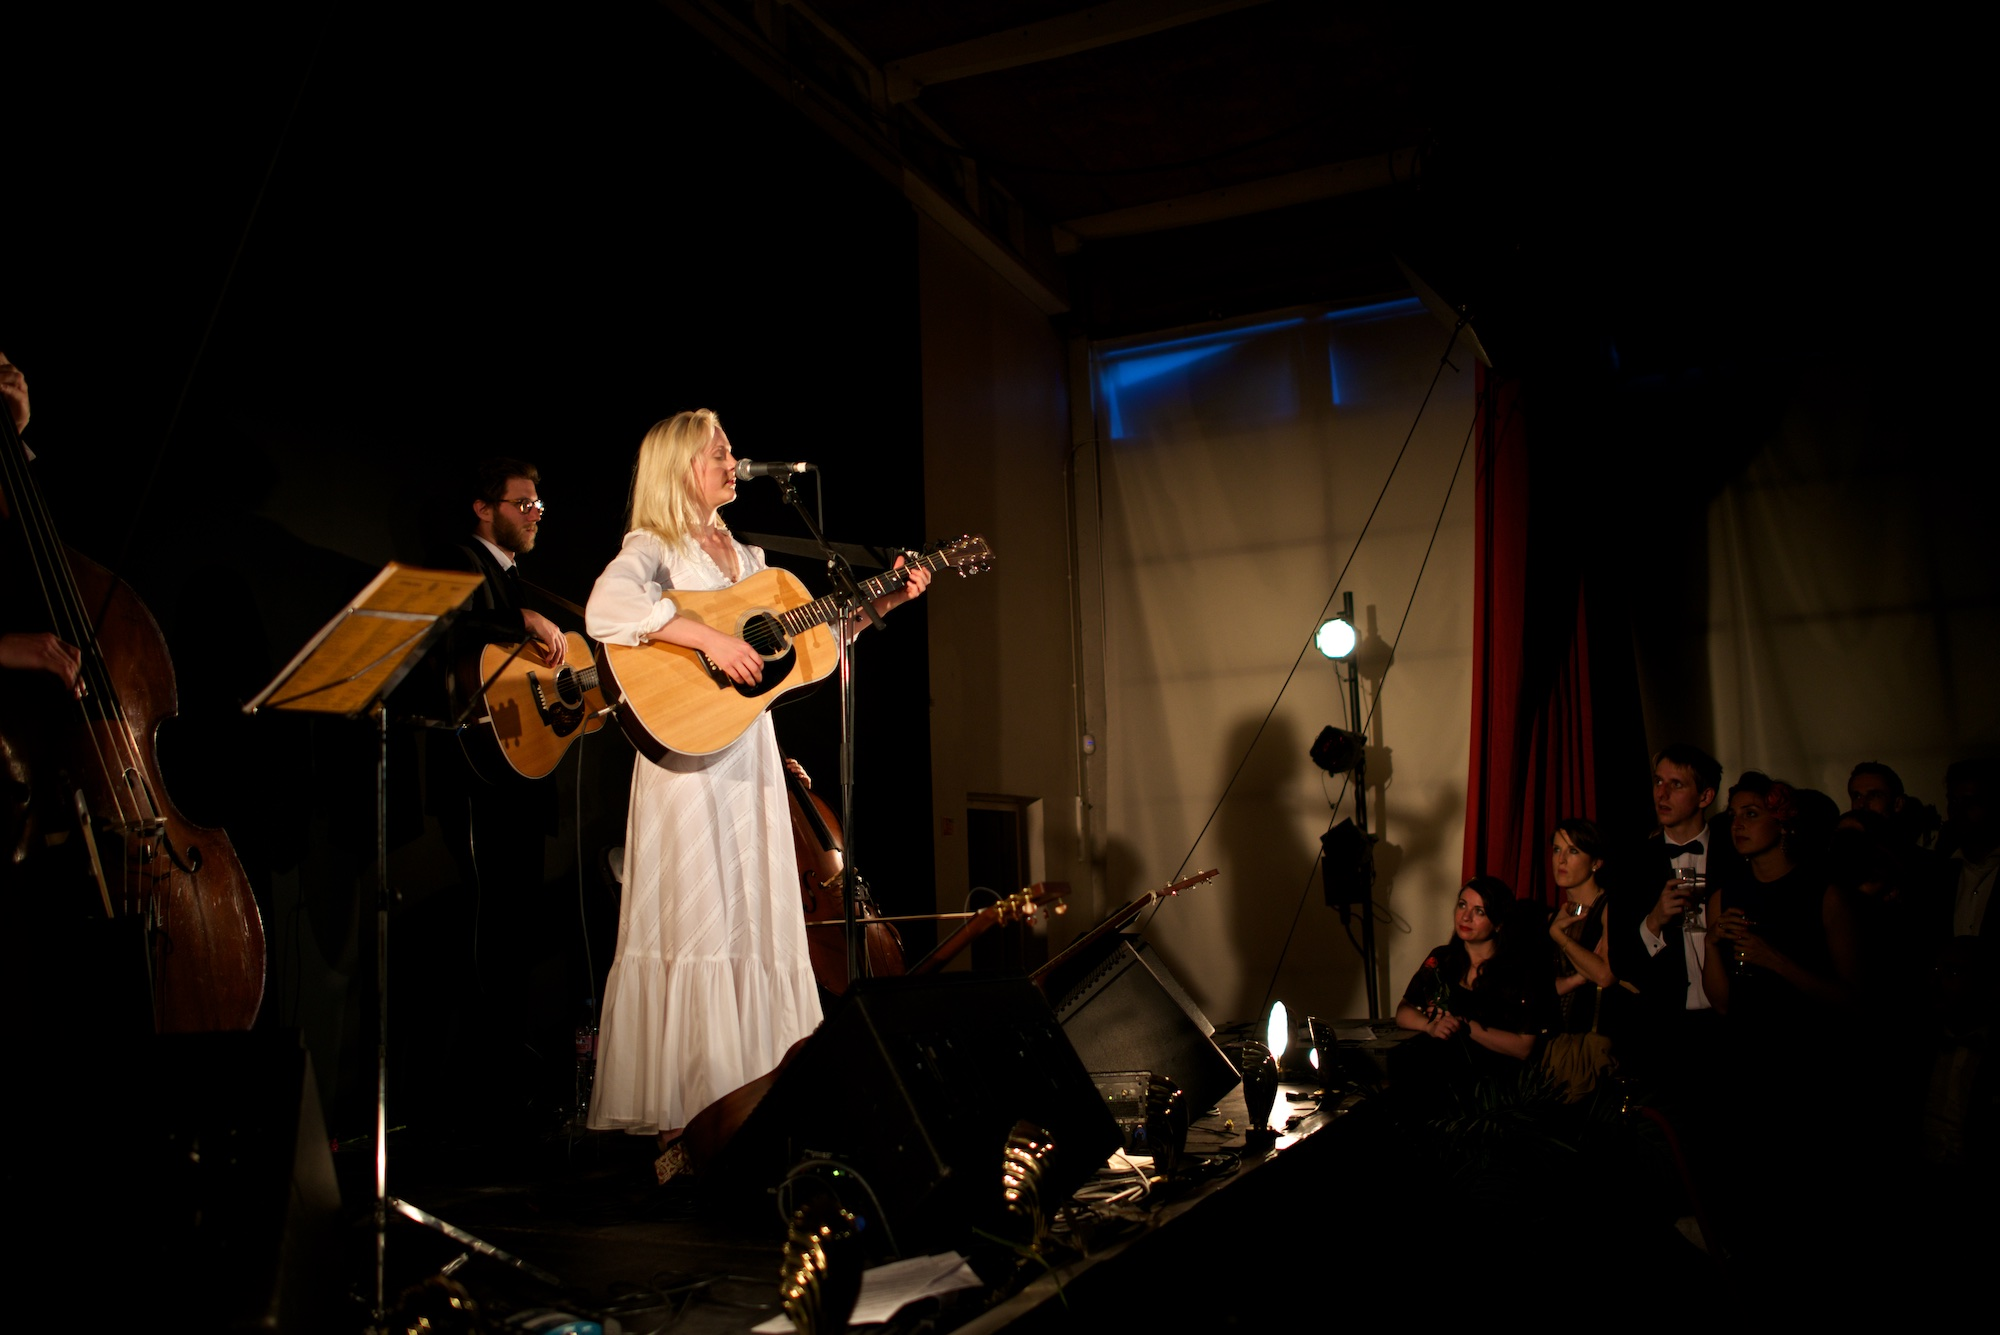 Laura Marling sings whilst playing the guitar.